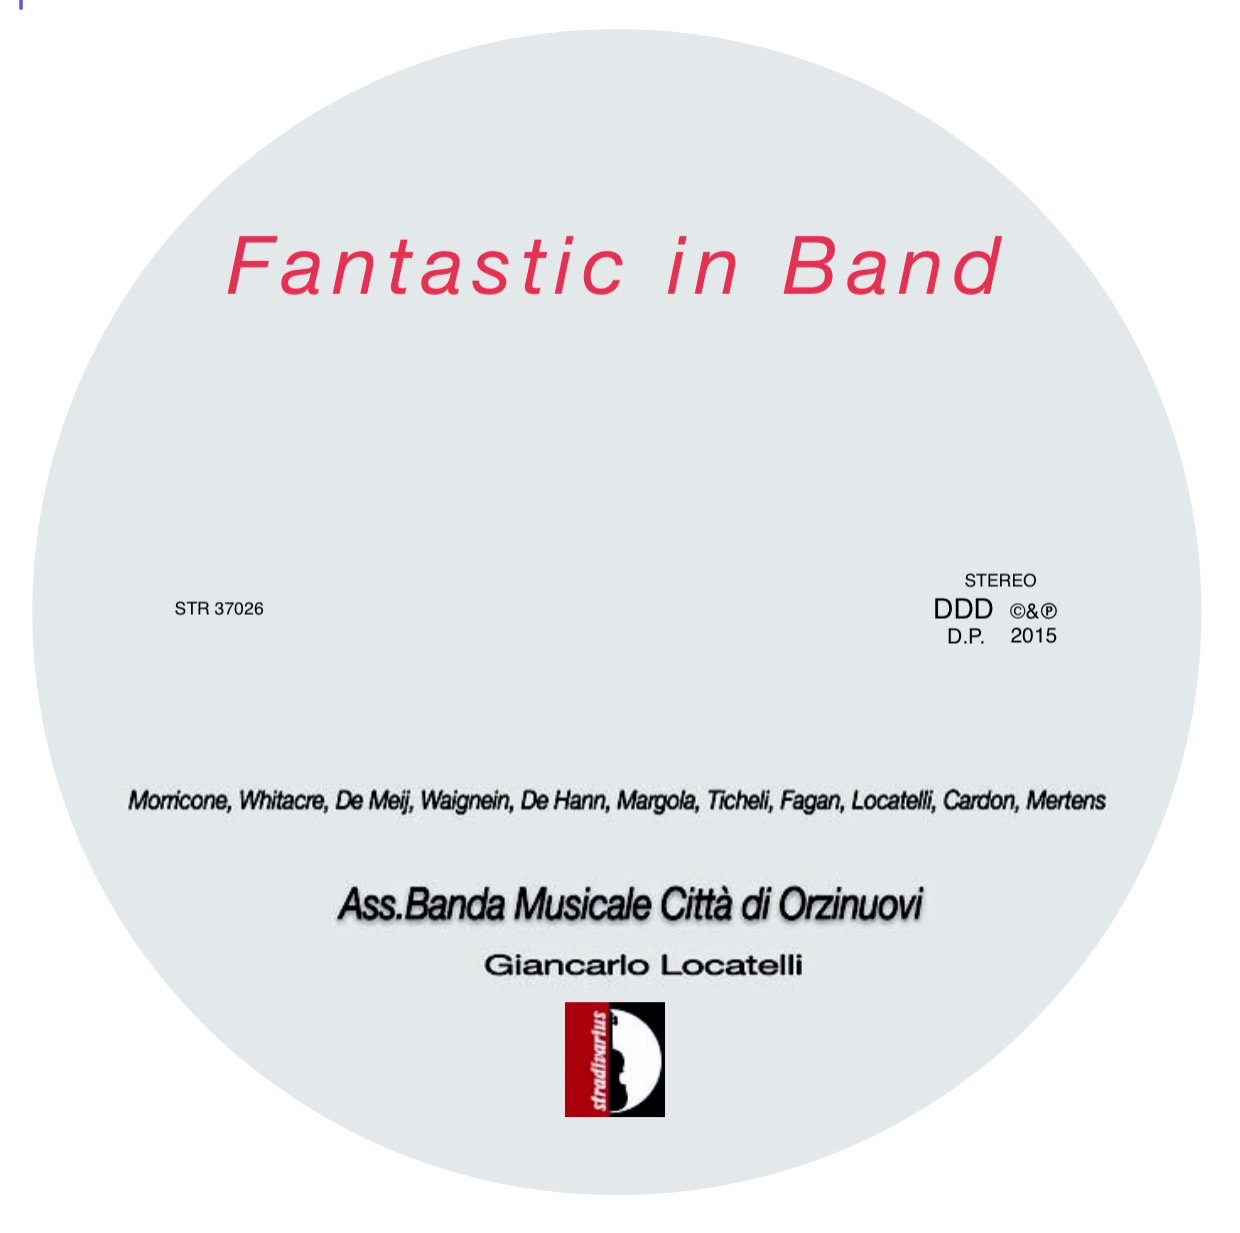 Fantastic in Band